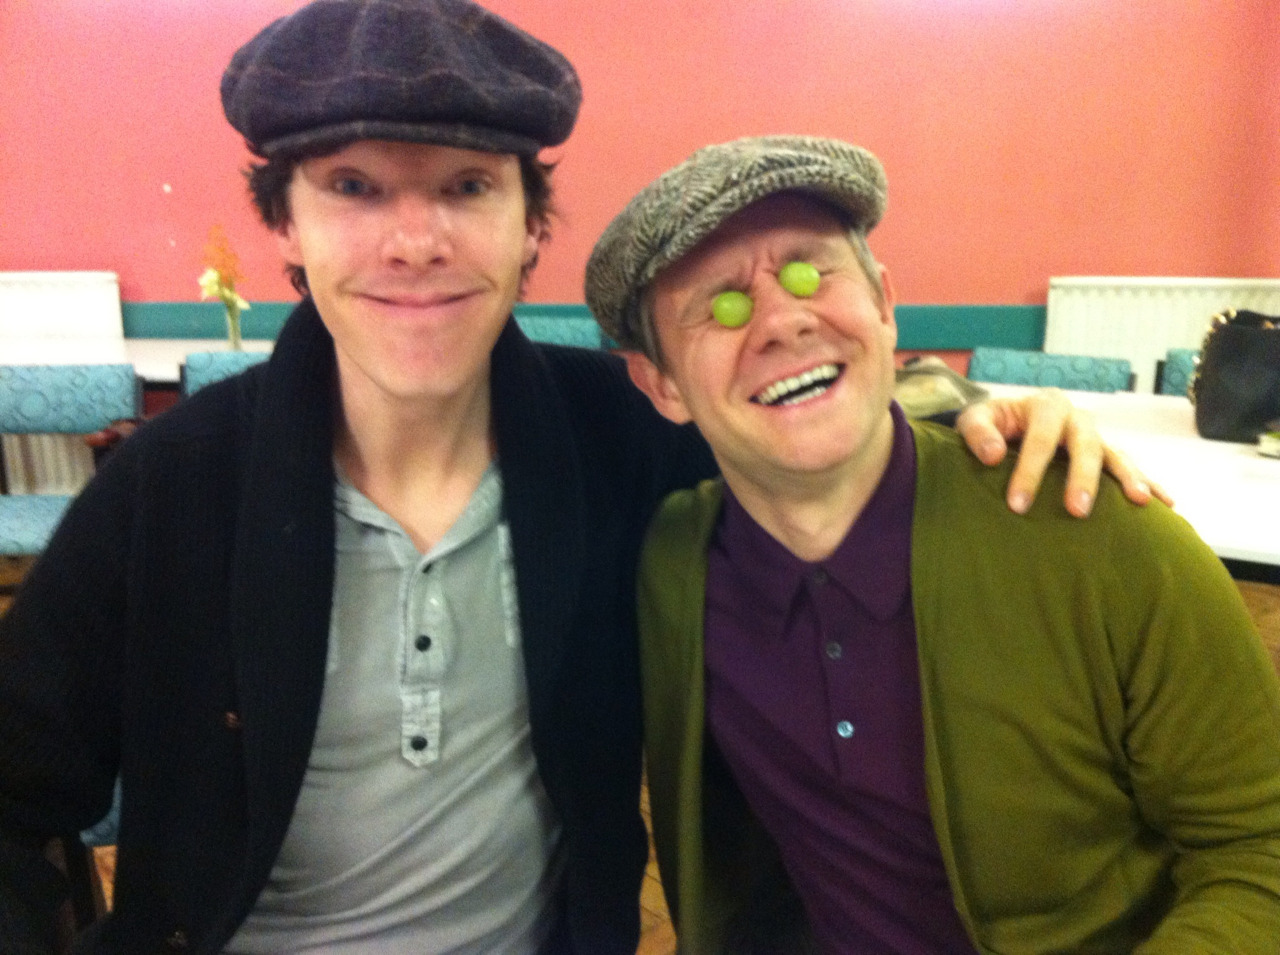 Sherlock read-through over, plenty of surprises in store for series three!